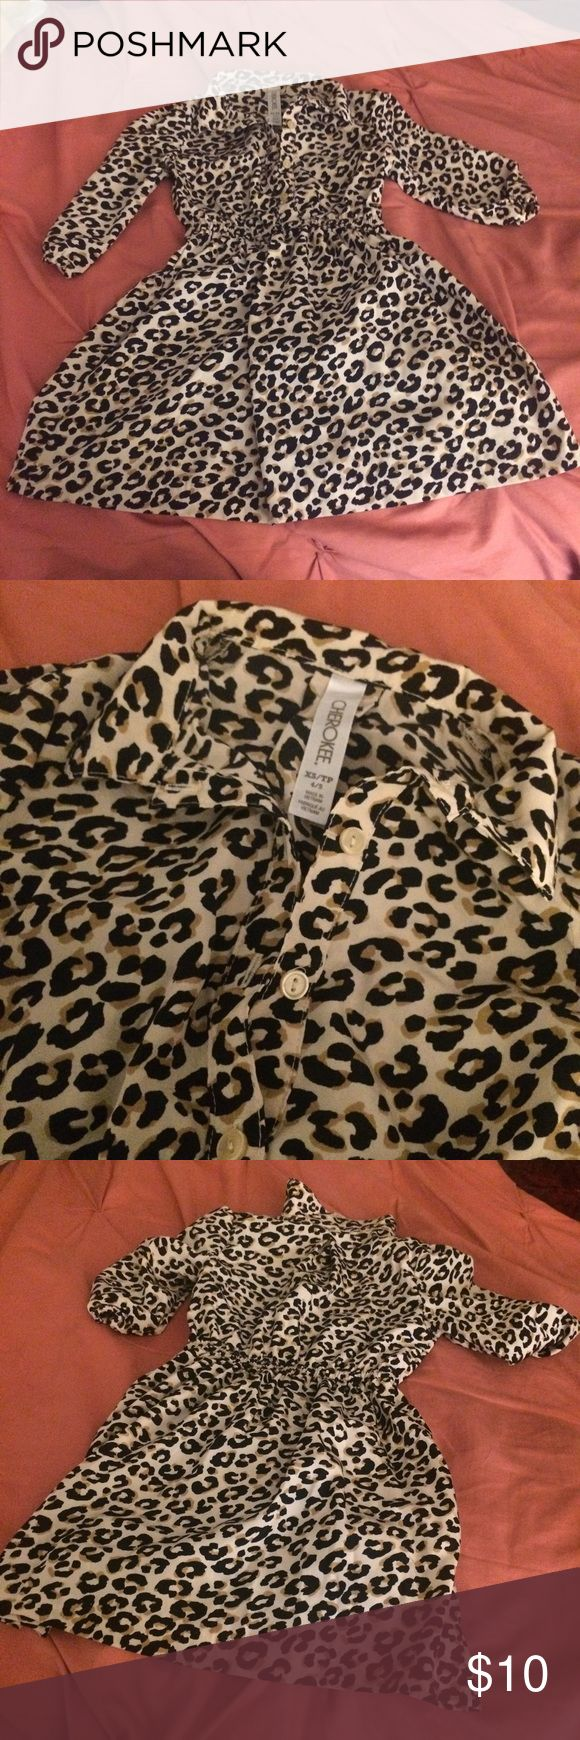 Cherokee cheetah print dress Very cute and comfy for any toddler size 4/5 Cherokee Dresses